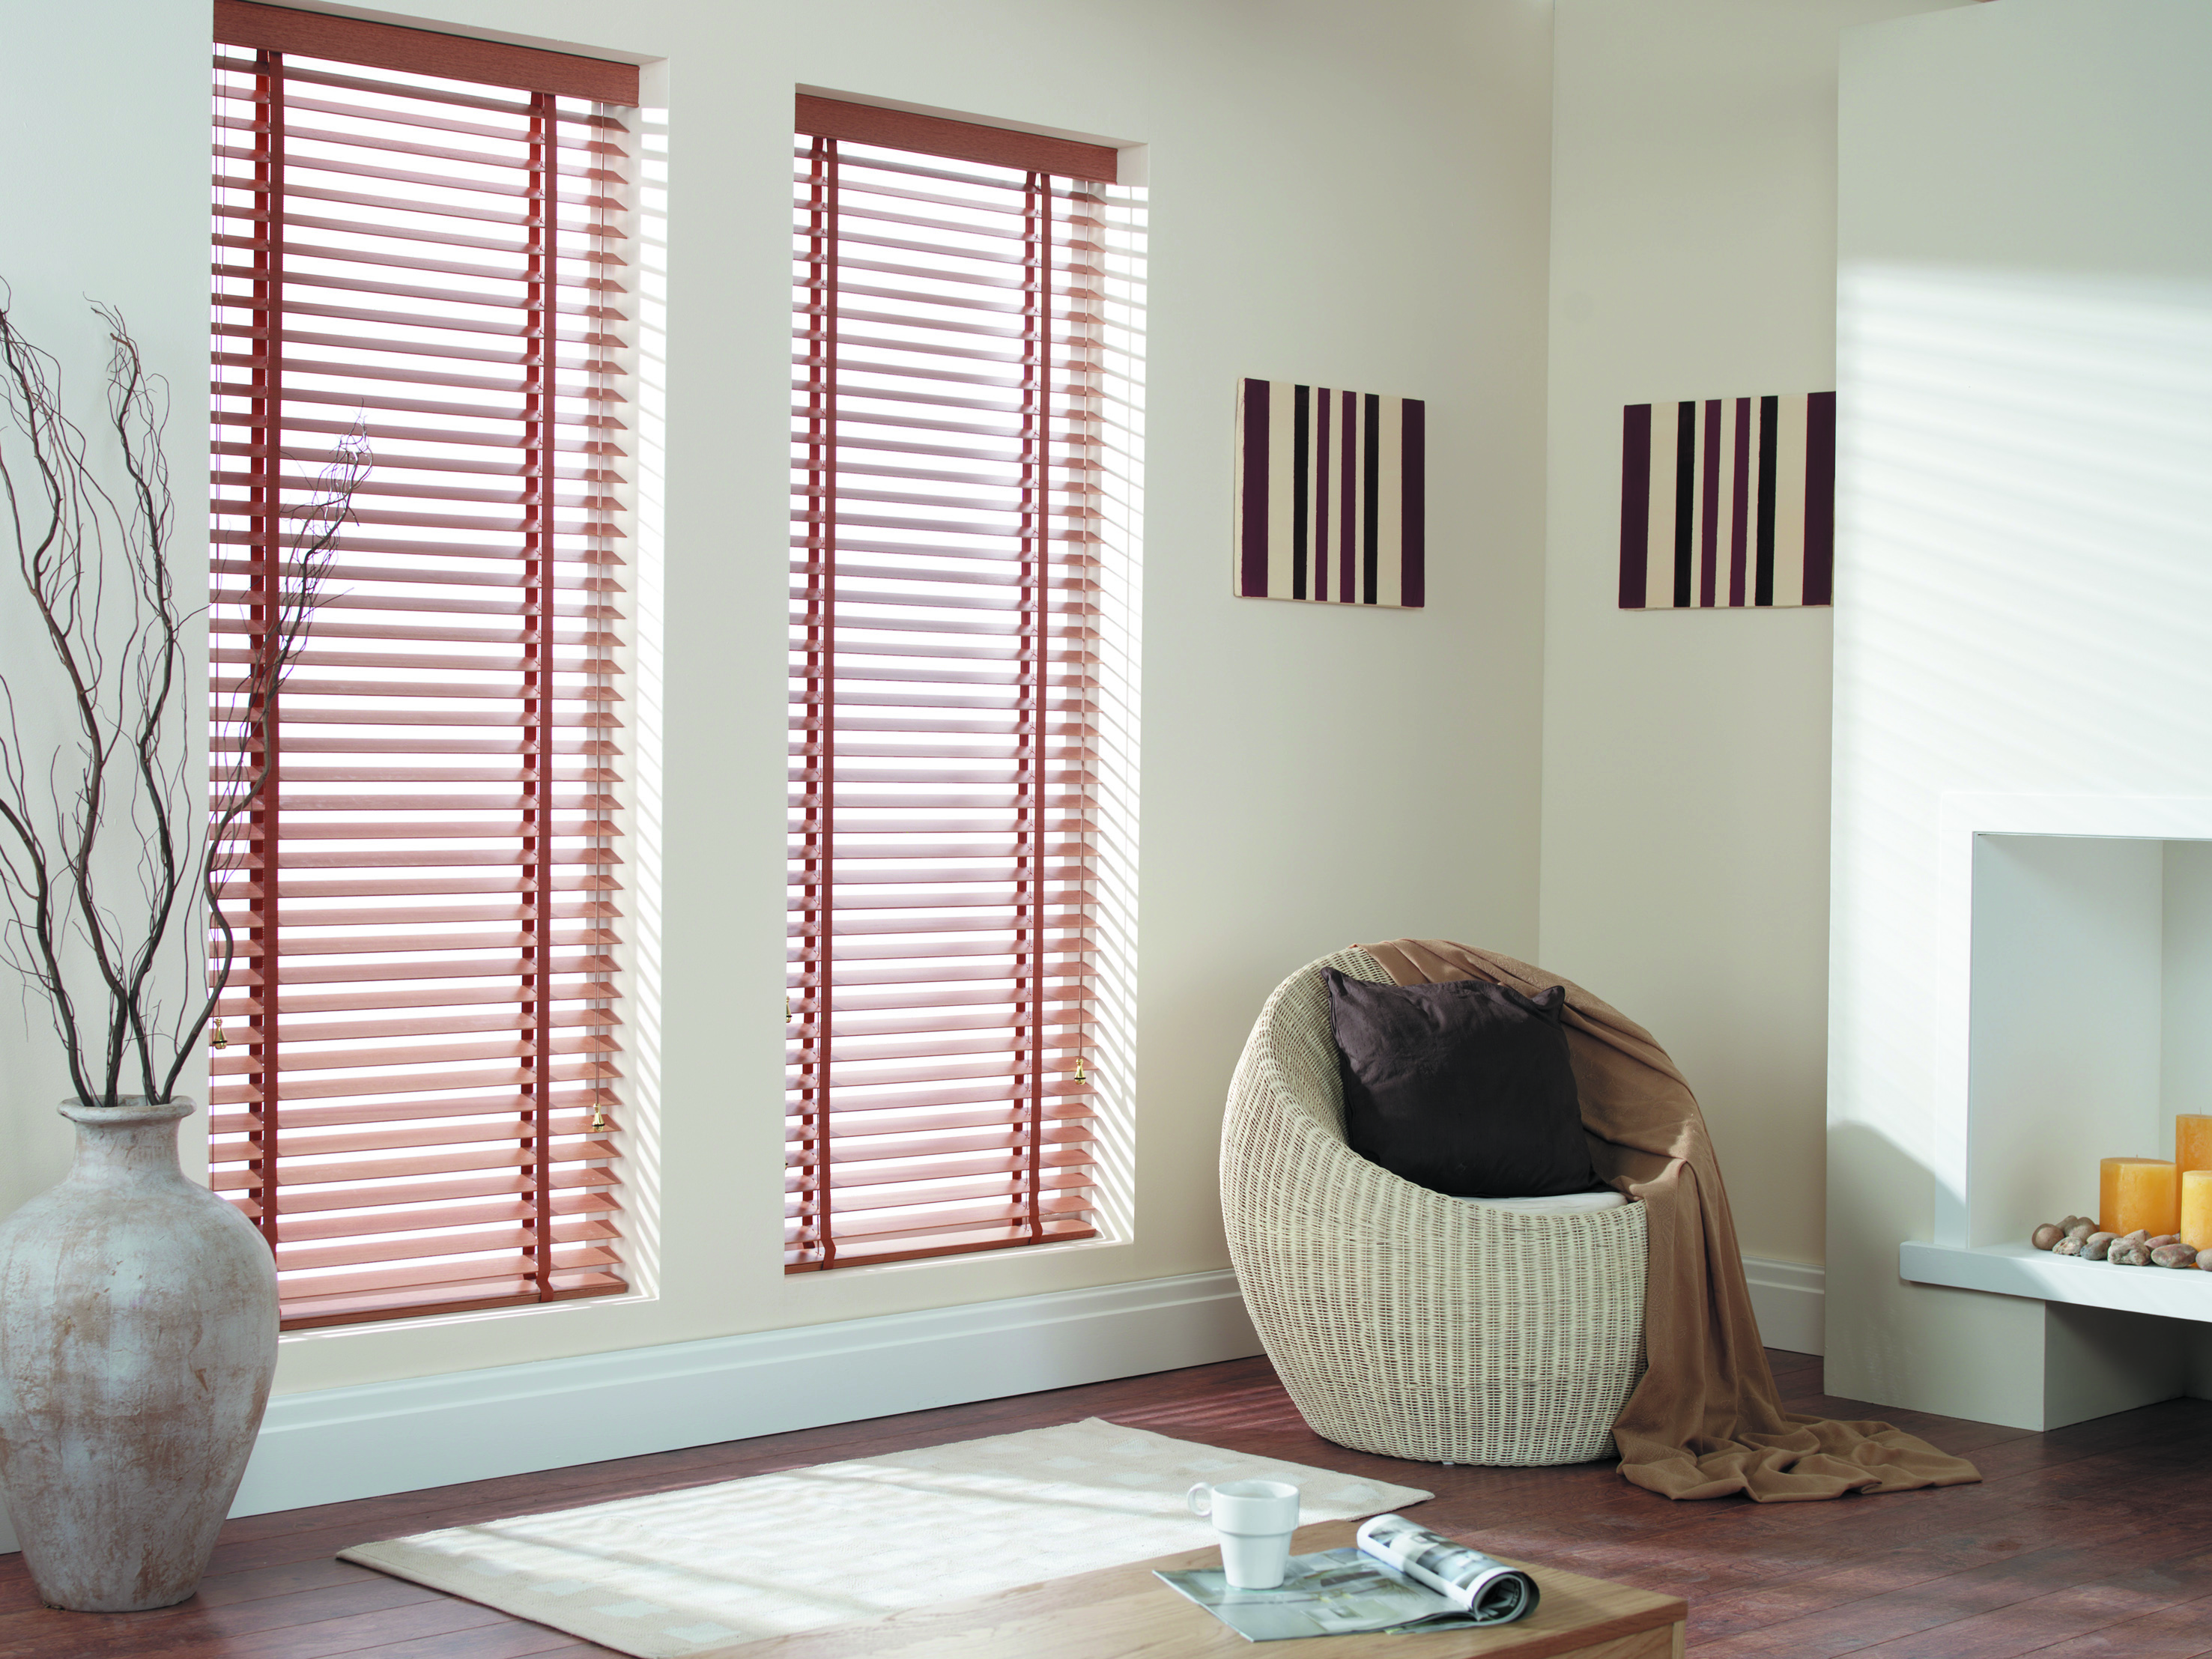 venetian blinds | MSwoodenblinds